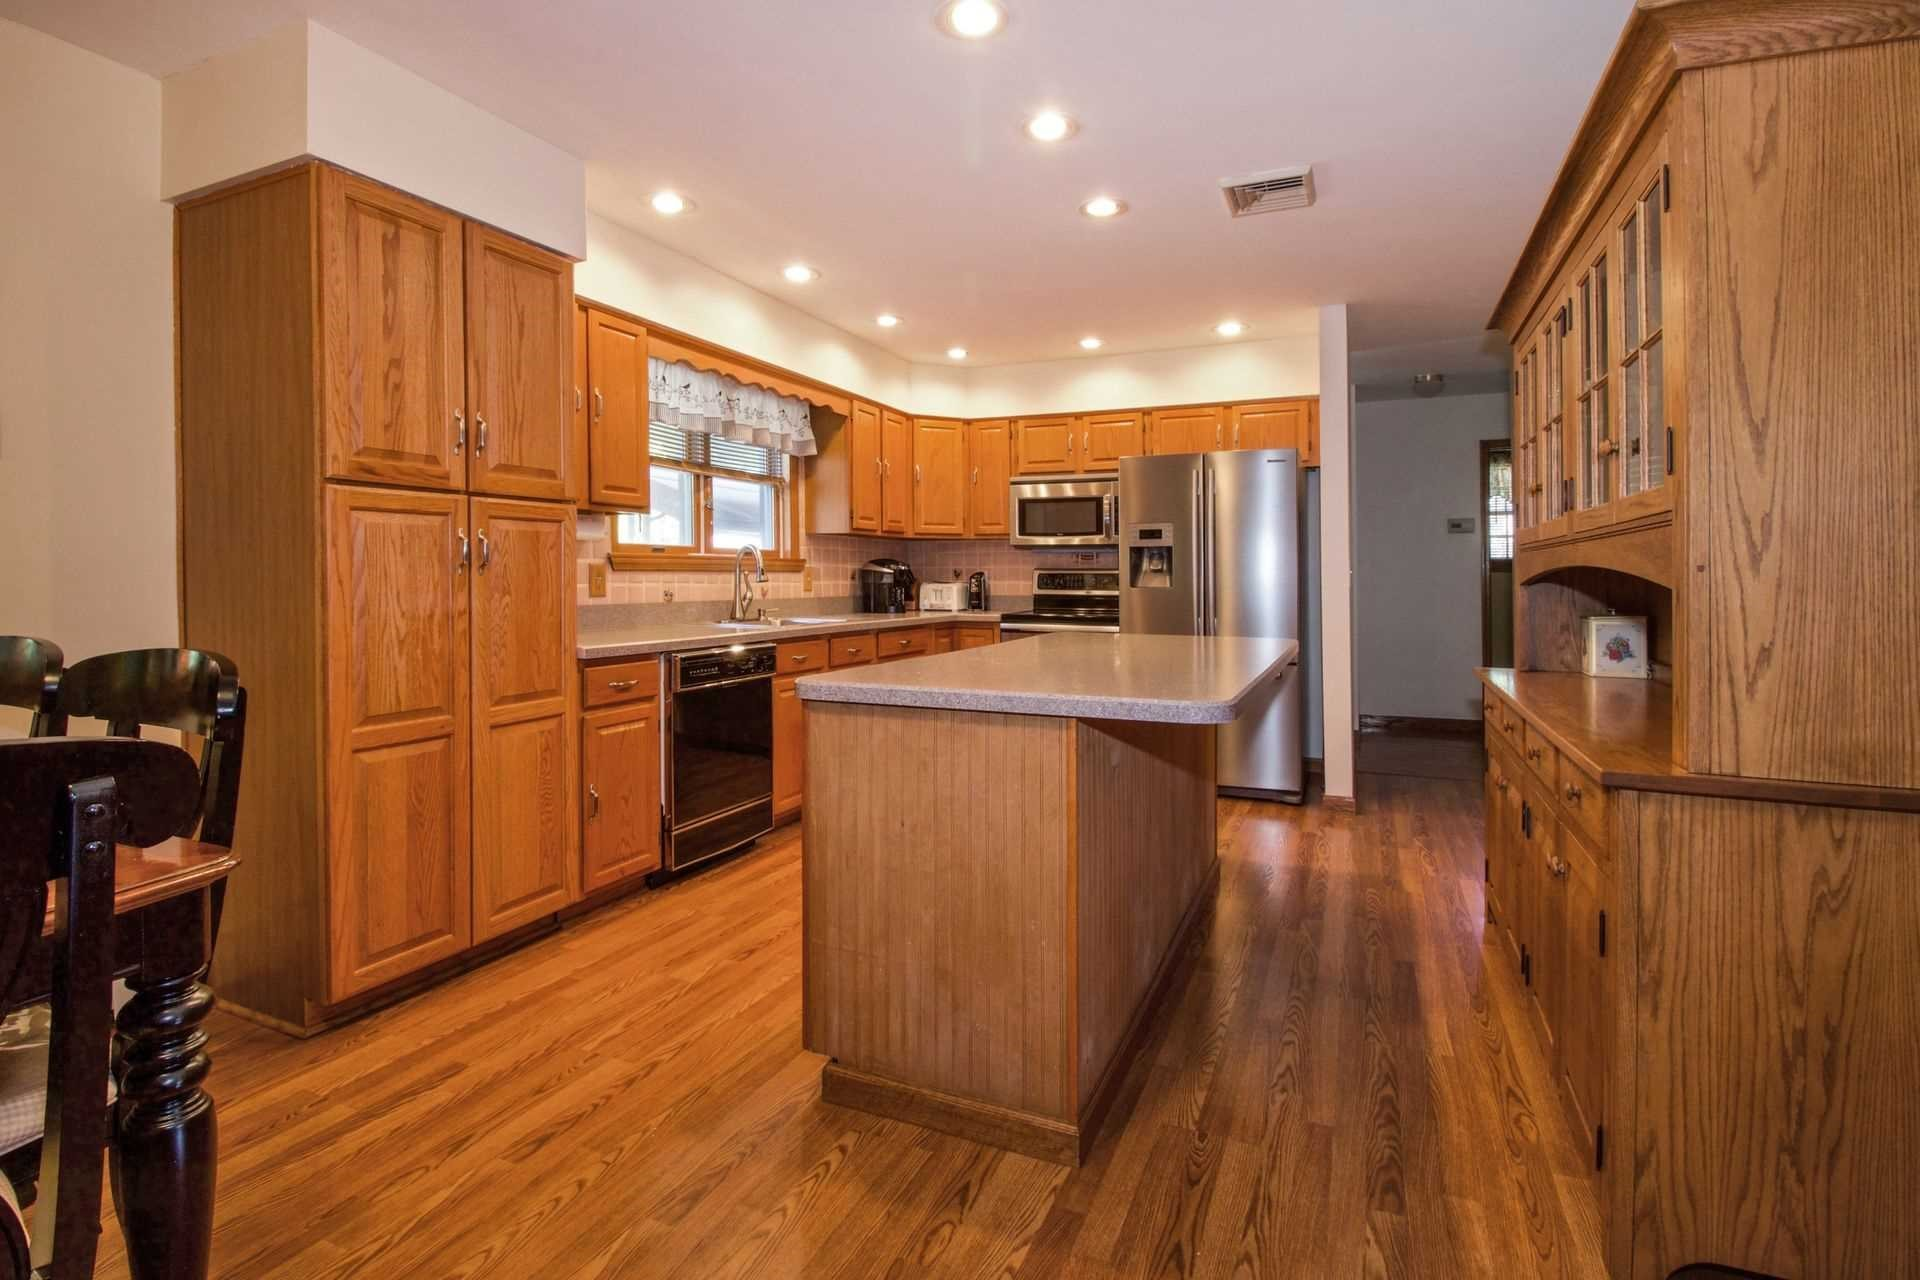 Additional photo for property listing at 1 RED OAK Lane 1 RED OAK Lane Fishkill, New York 12524 United States